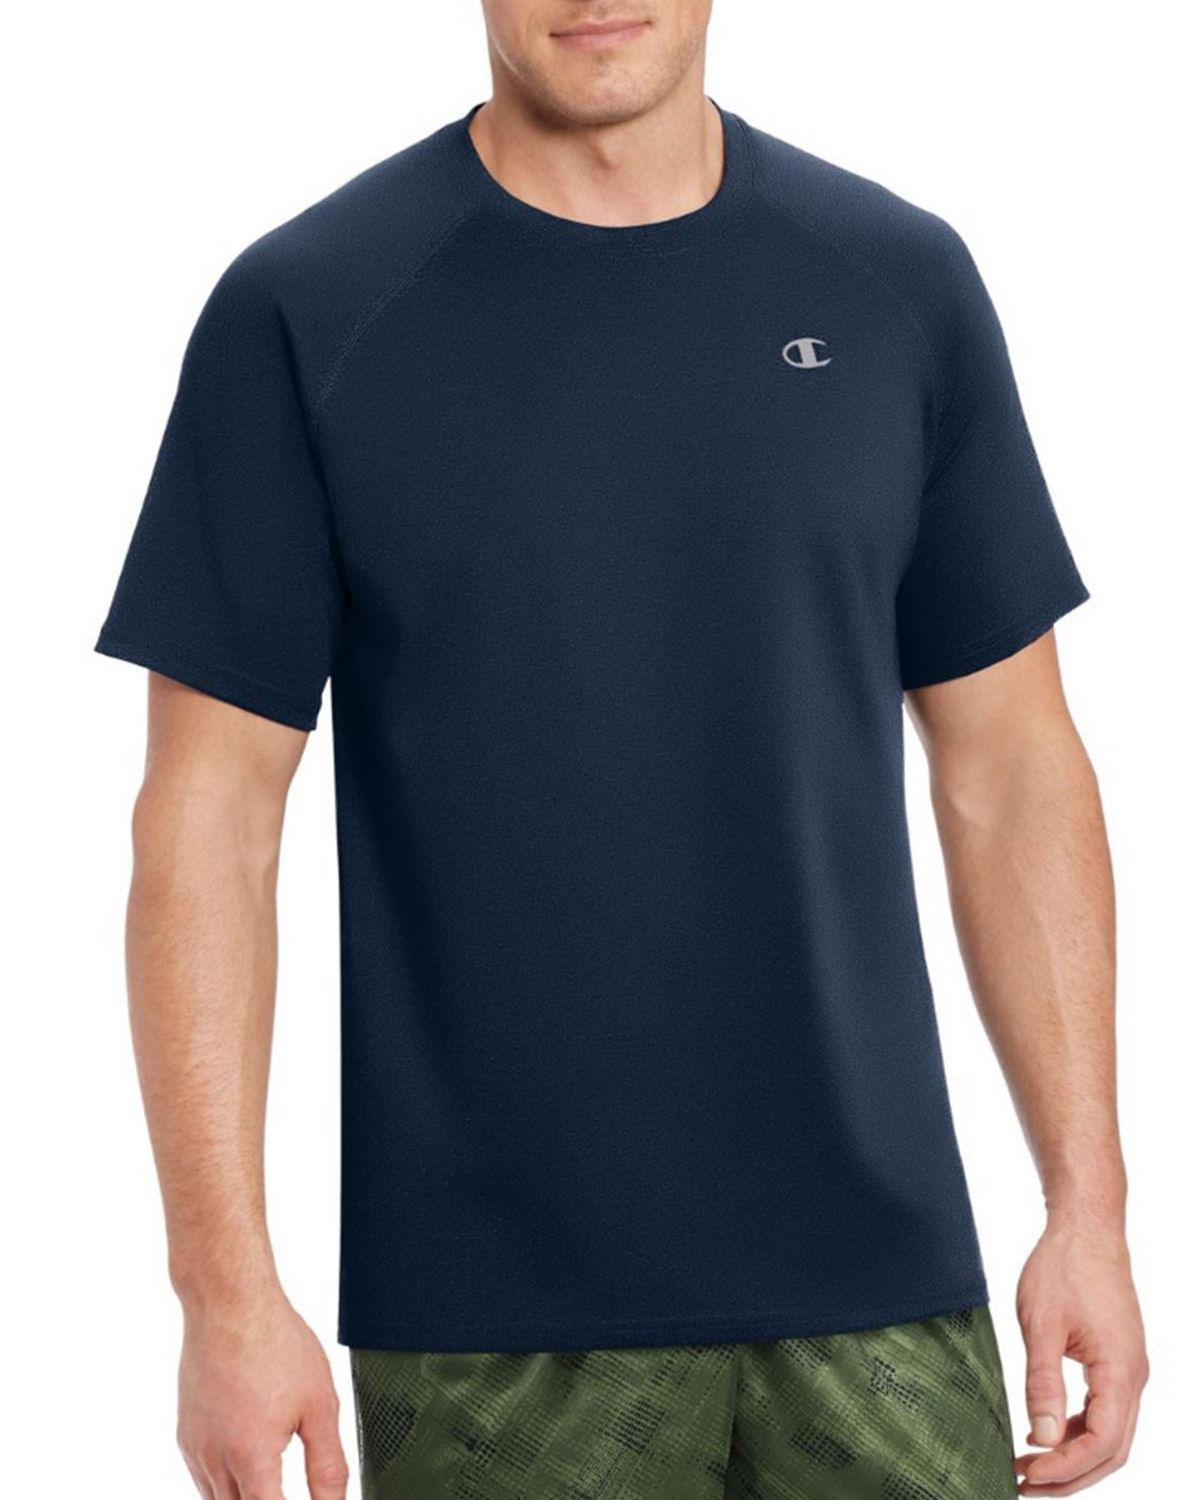 Champion T0881 Vapor Mens Tee - Navy - XL T0881